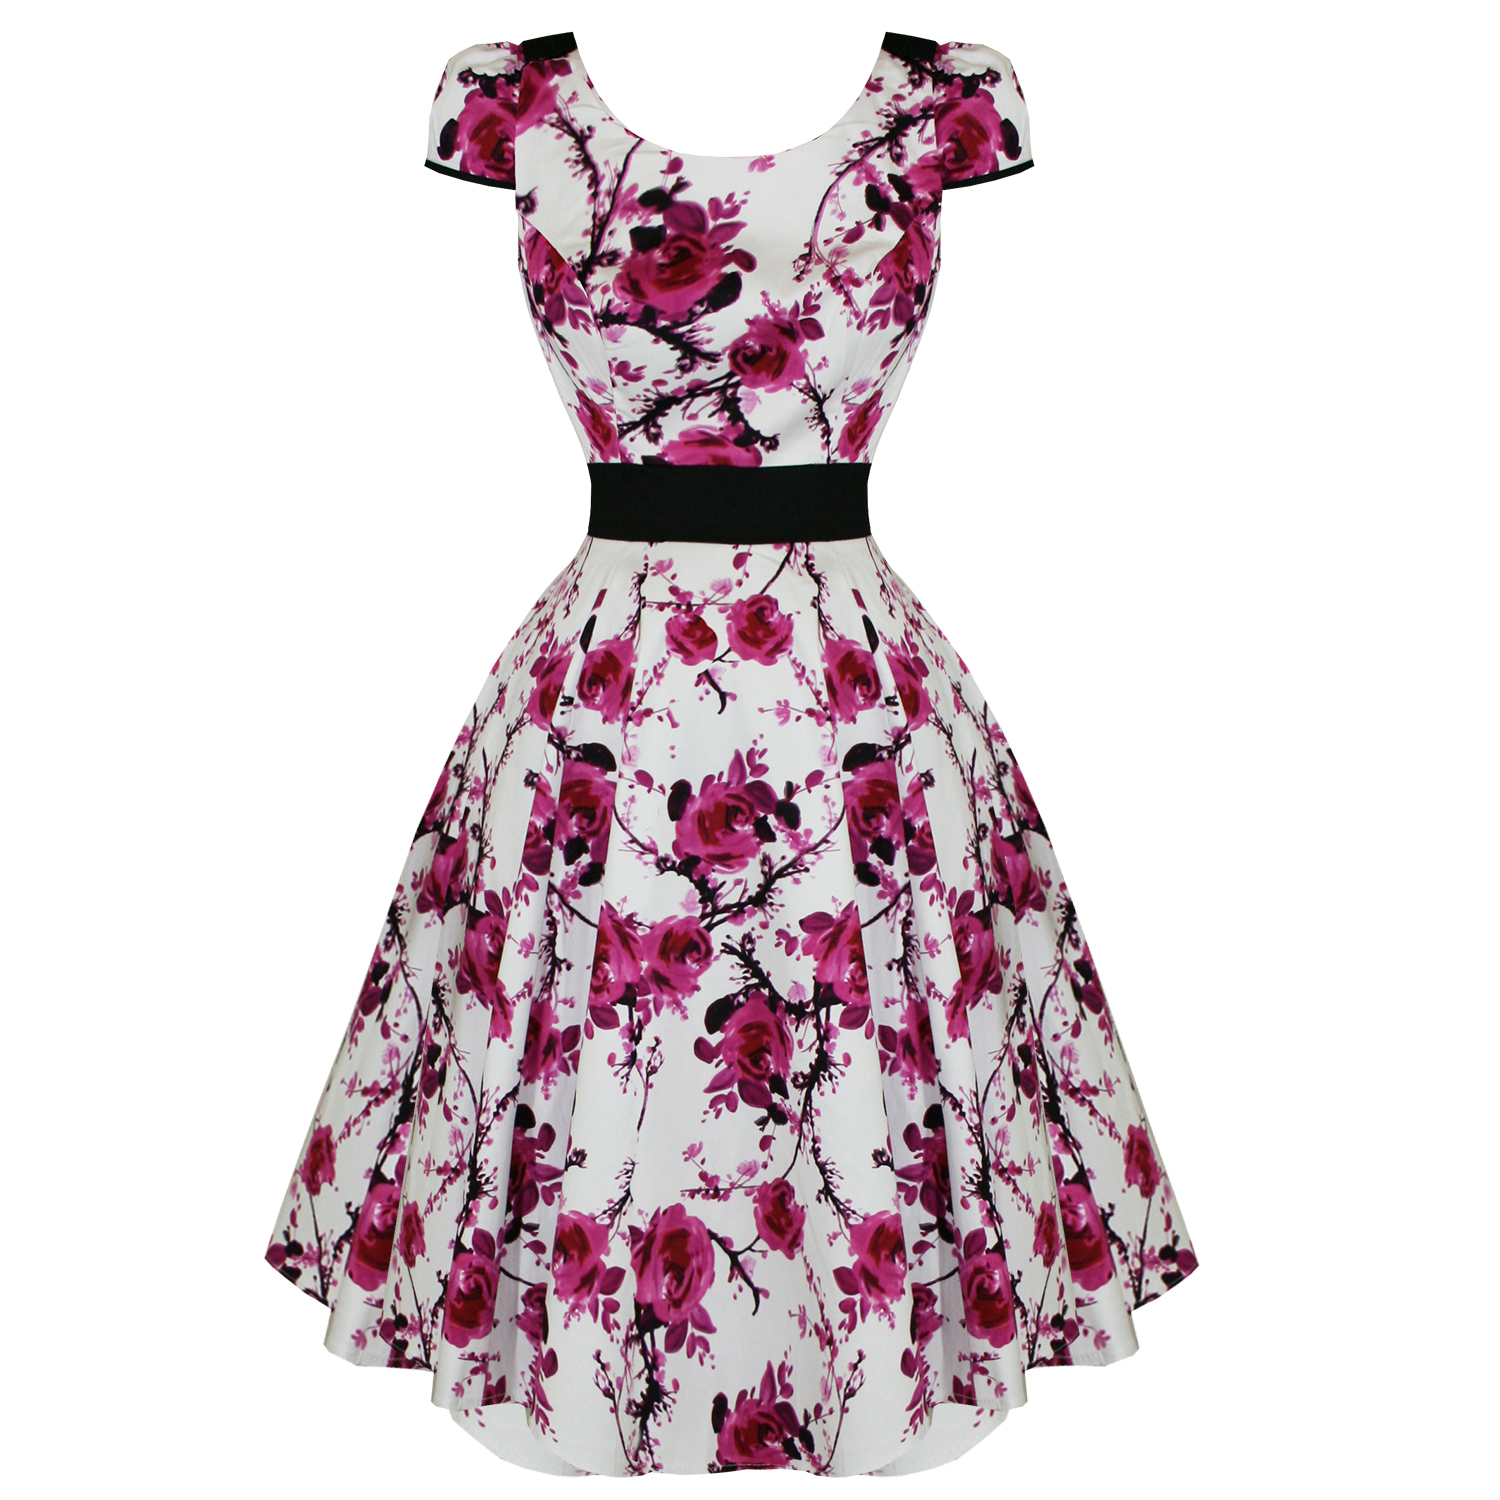 RKH47 Hearts & Roses Pink Floral Rockabilly Formal Evening Dress 50s Retro Plus